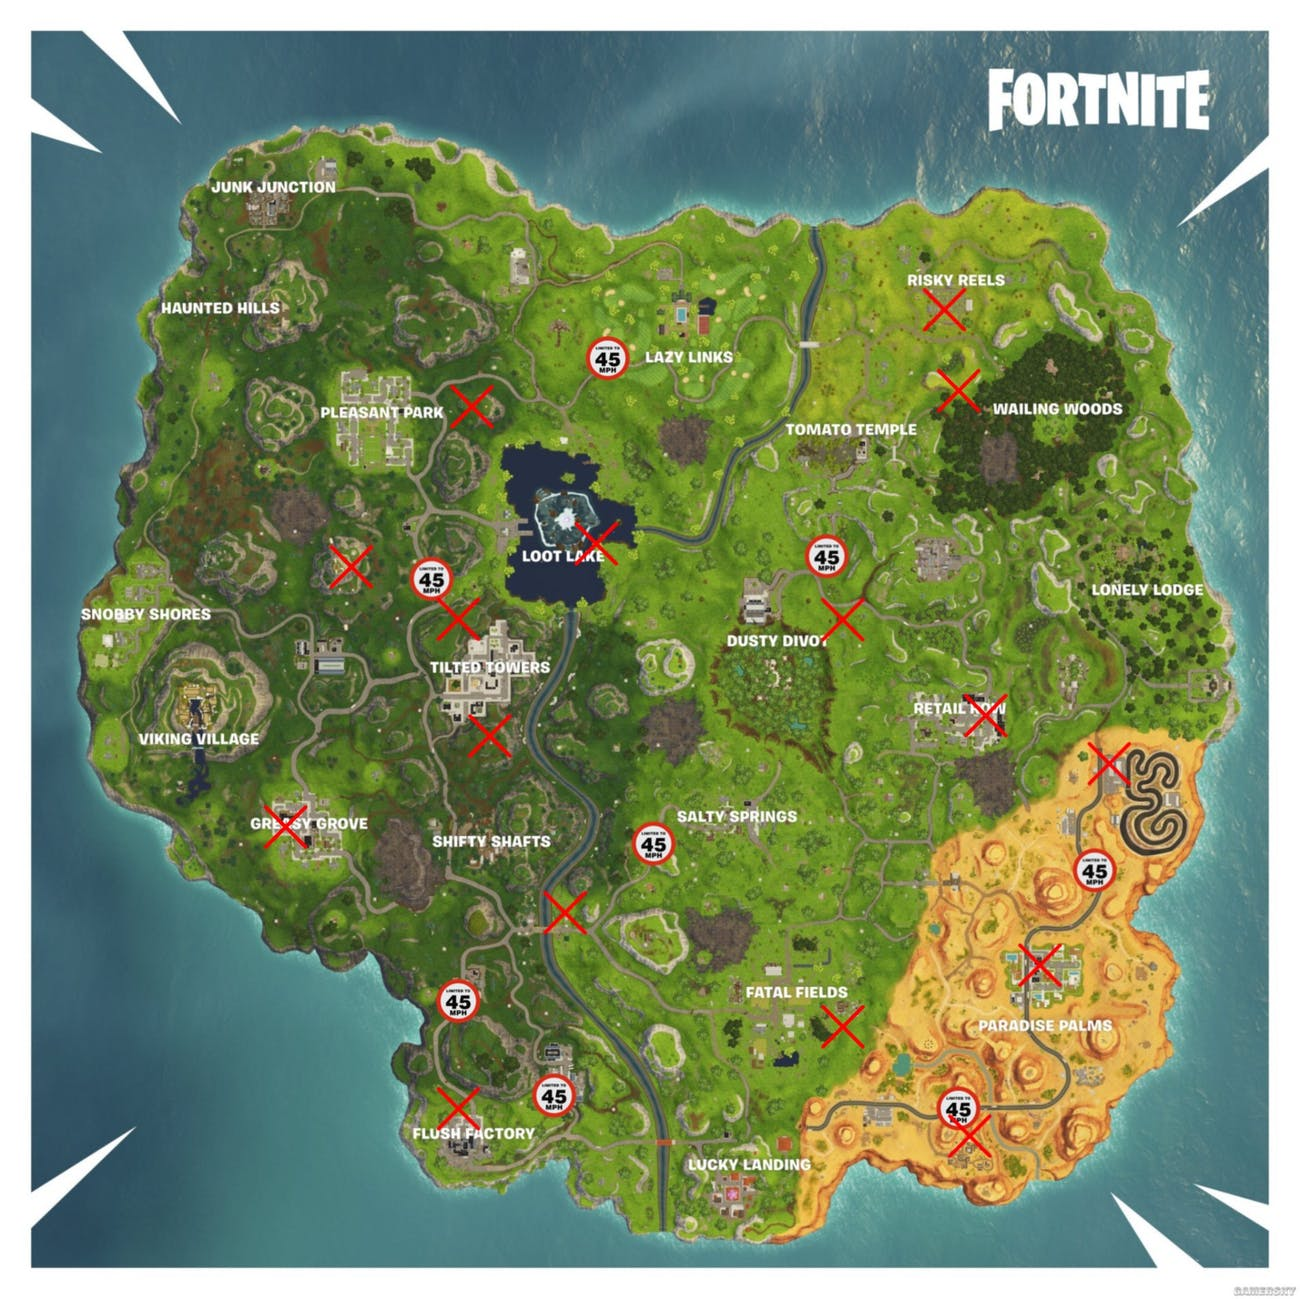 Fortnite' Radar Signs Locations Map: Where to Speed by Them